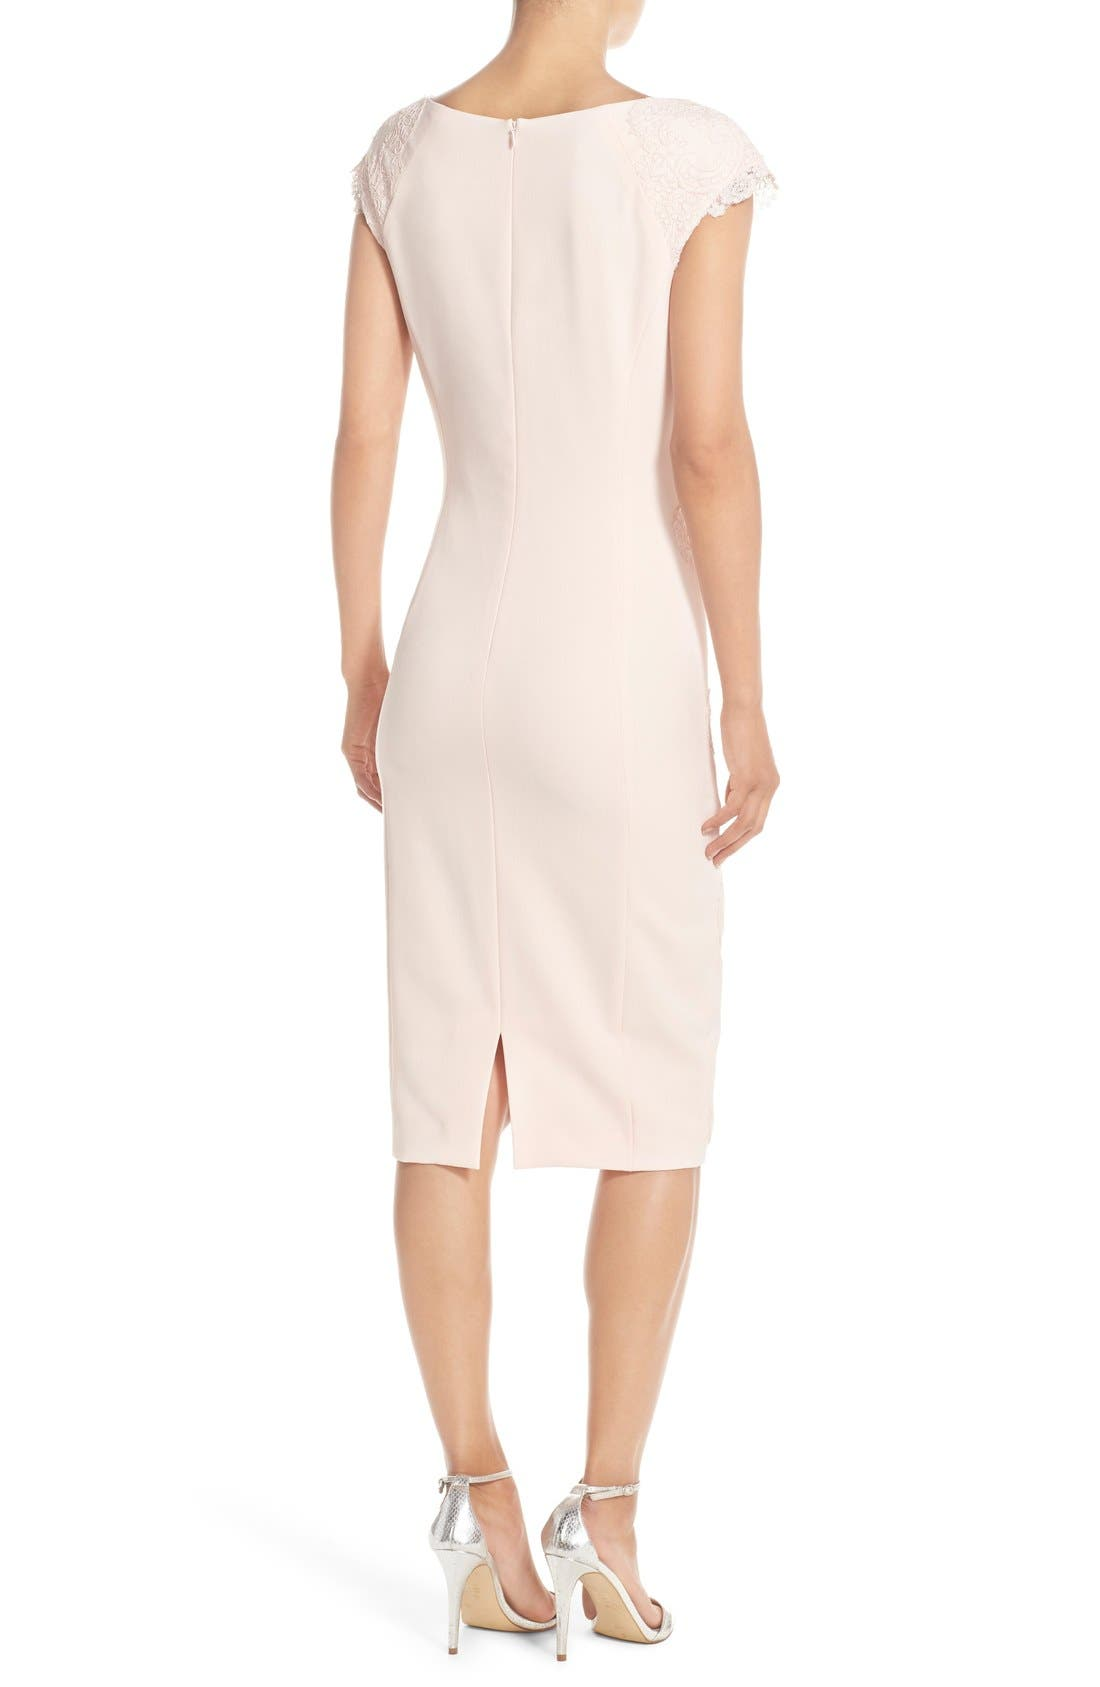 Lace Detail Crepe Sheath Dress,                             Alternate thumbnail 9, color,                             BLUSH